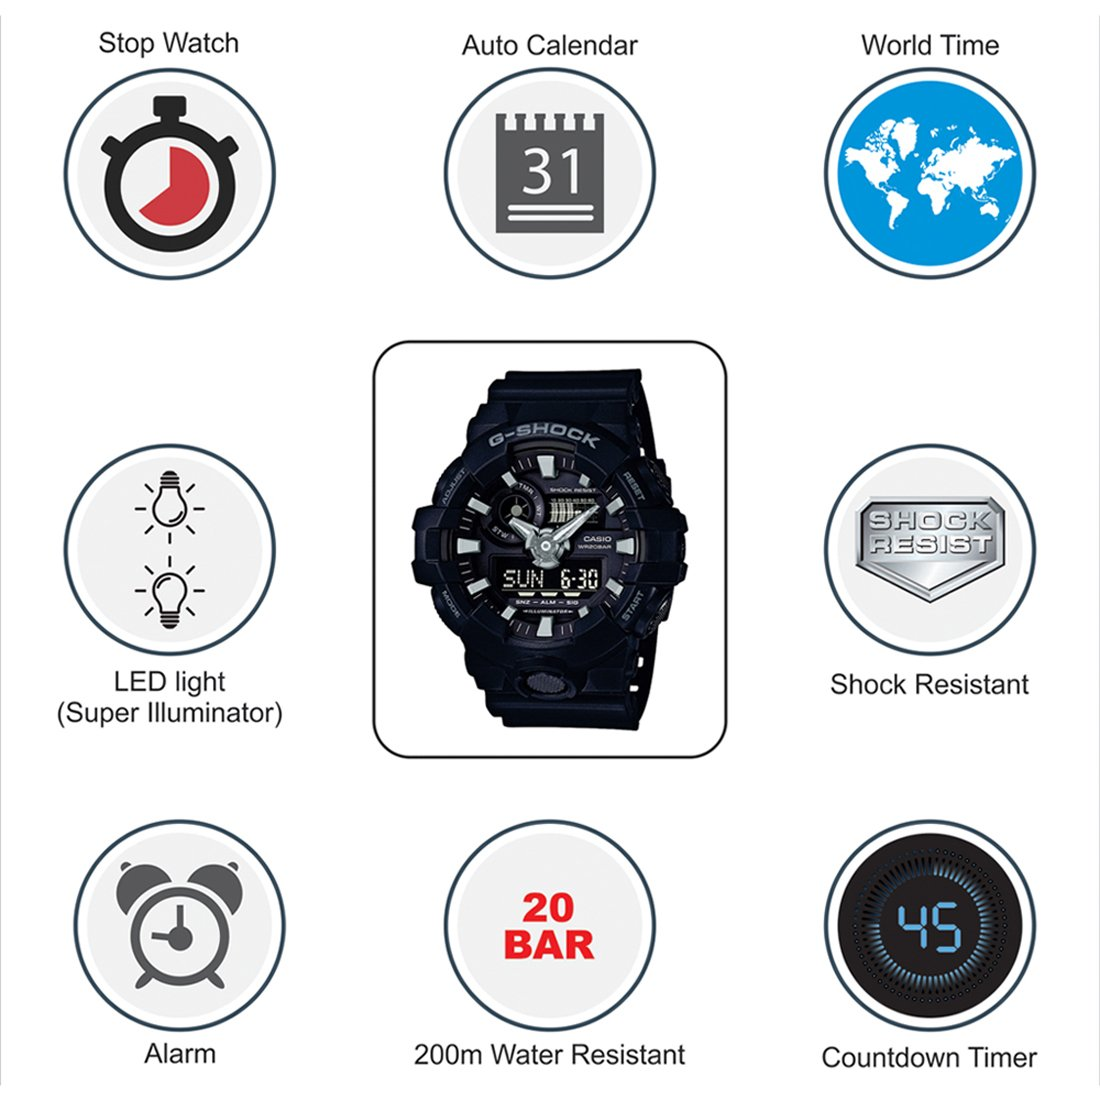 1459c37a8 Buy Casio G-Shock Analog-Digital Black Dial Men s Watch - GA-700-1BDR  (G715) Online at Low Prices in India - Amazon.in